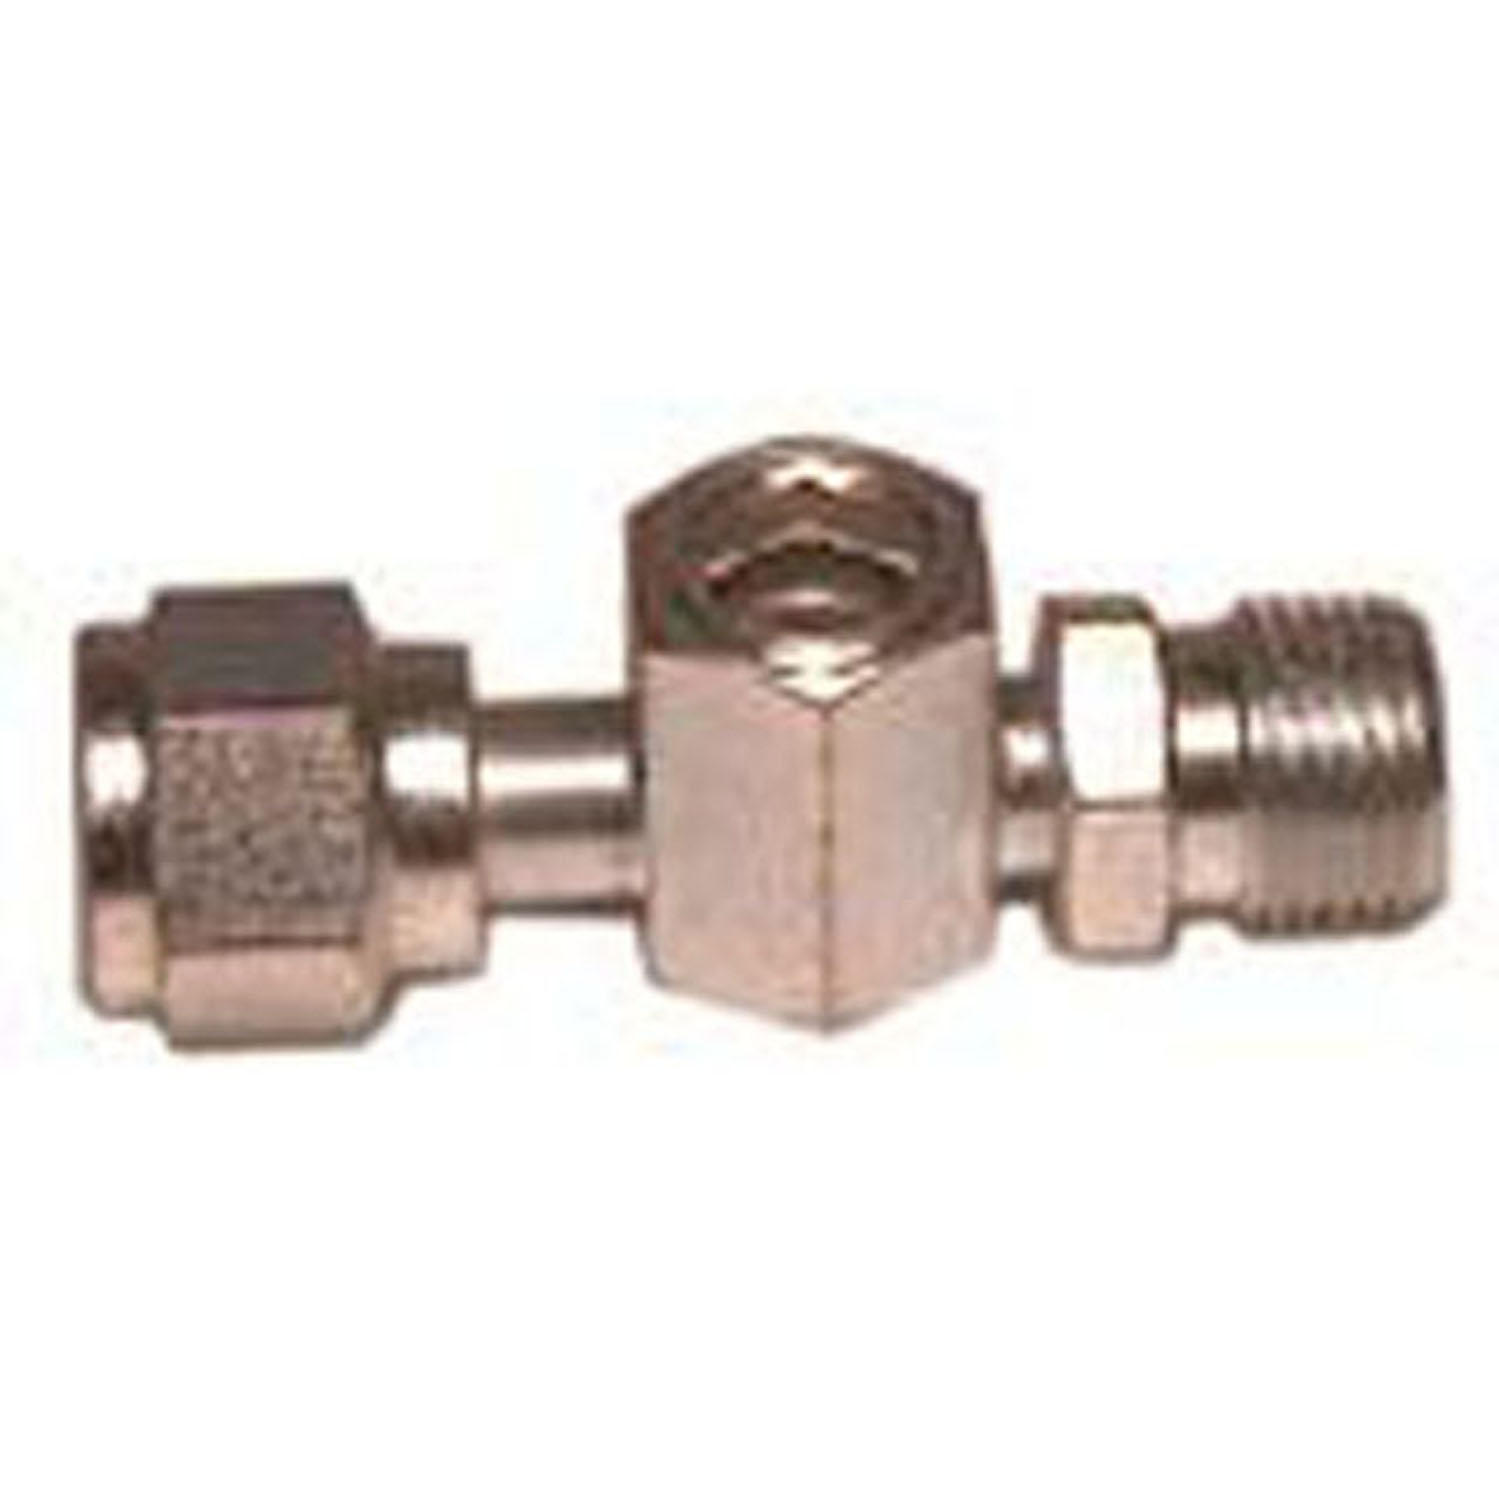 FT 2675 Adapters